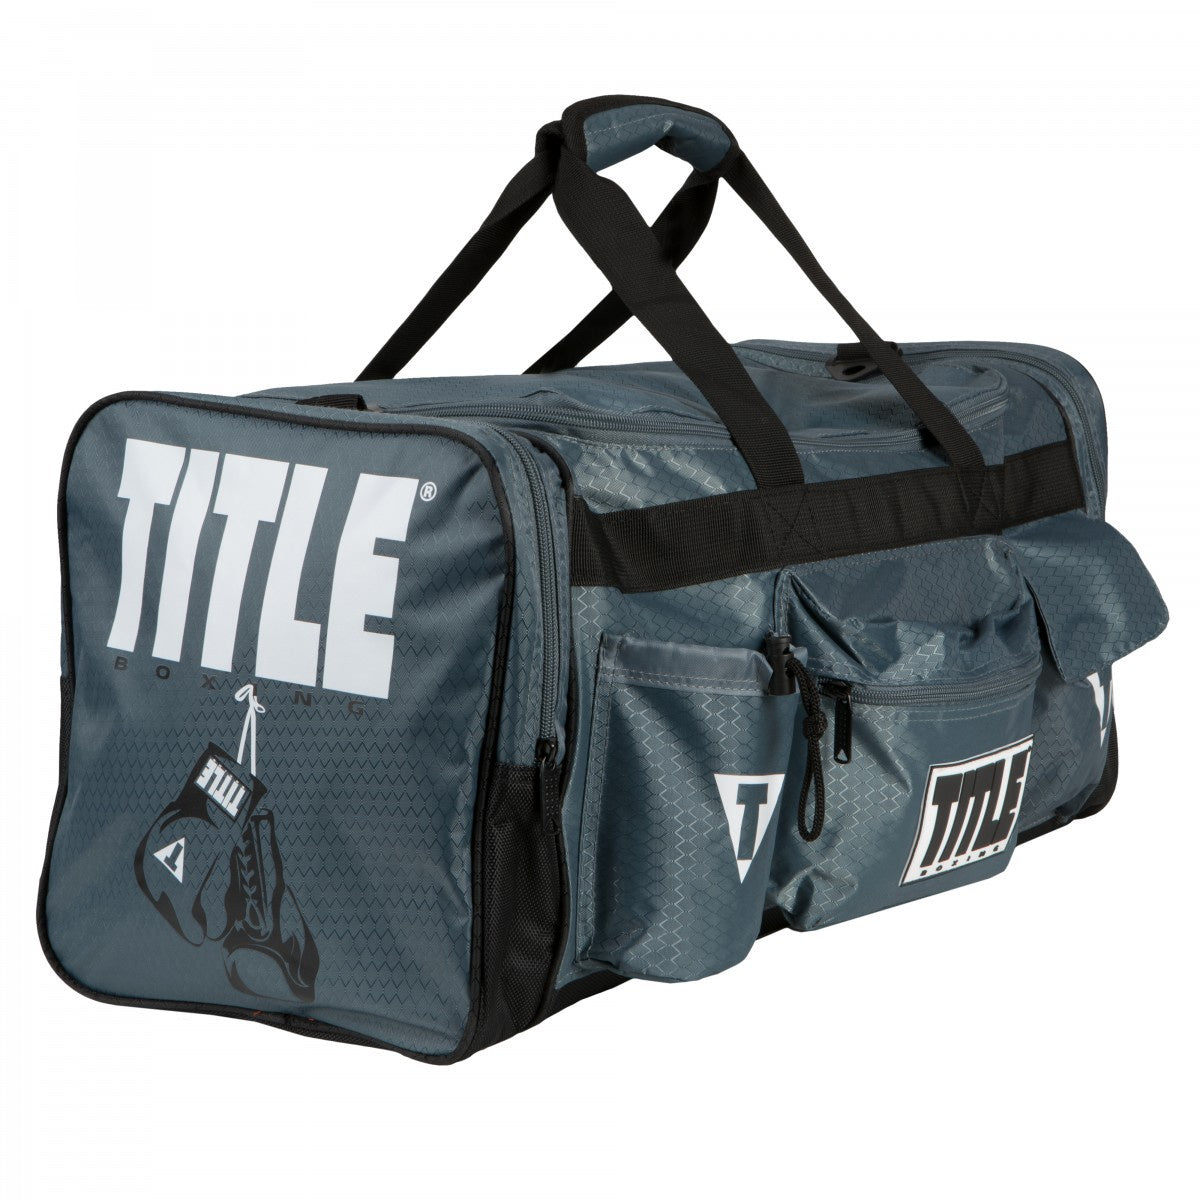 TITLE BAG DELUXE GEAR BAG 2.0 GREY/BLACK